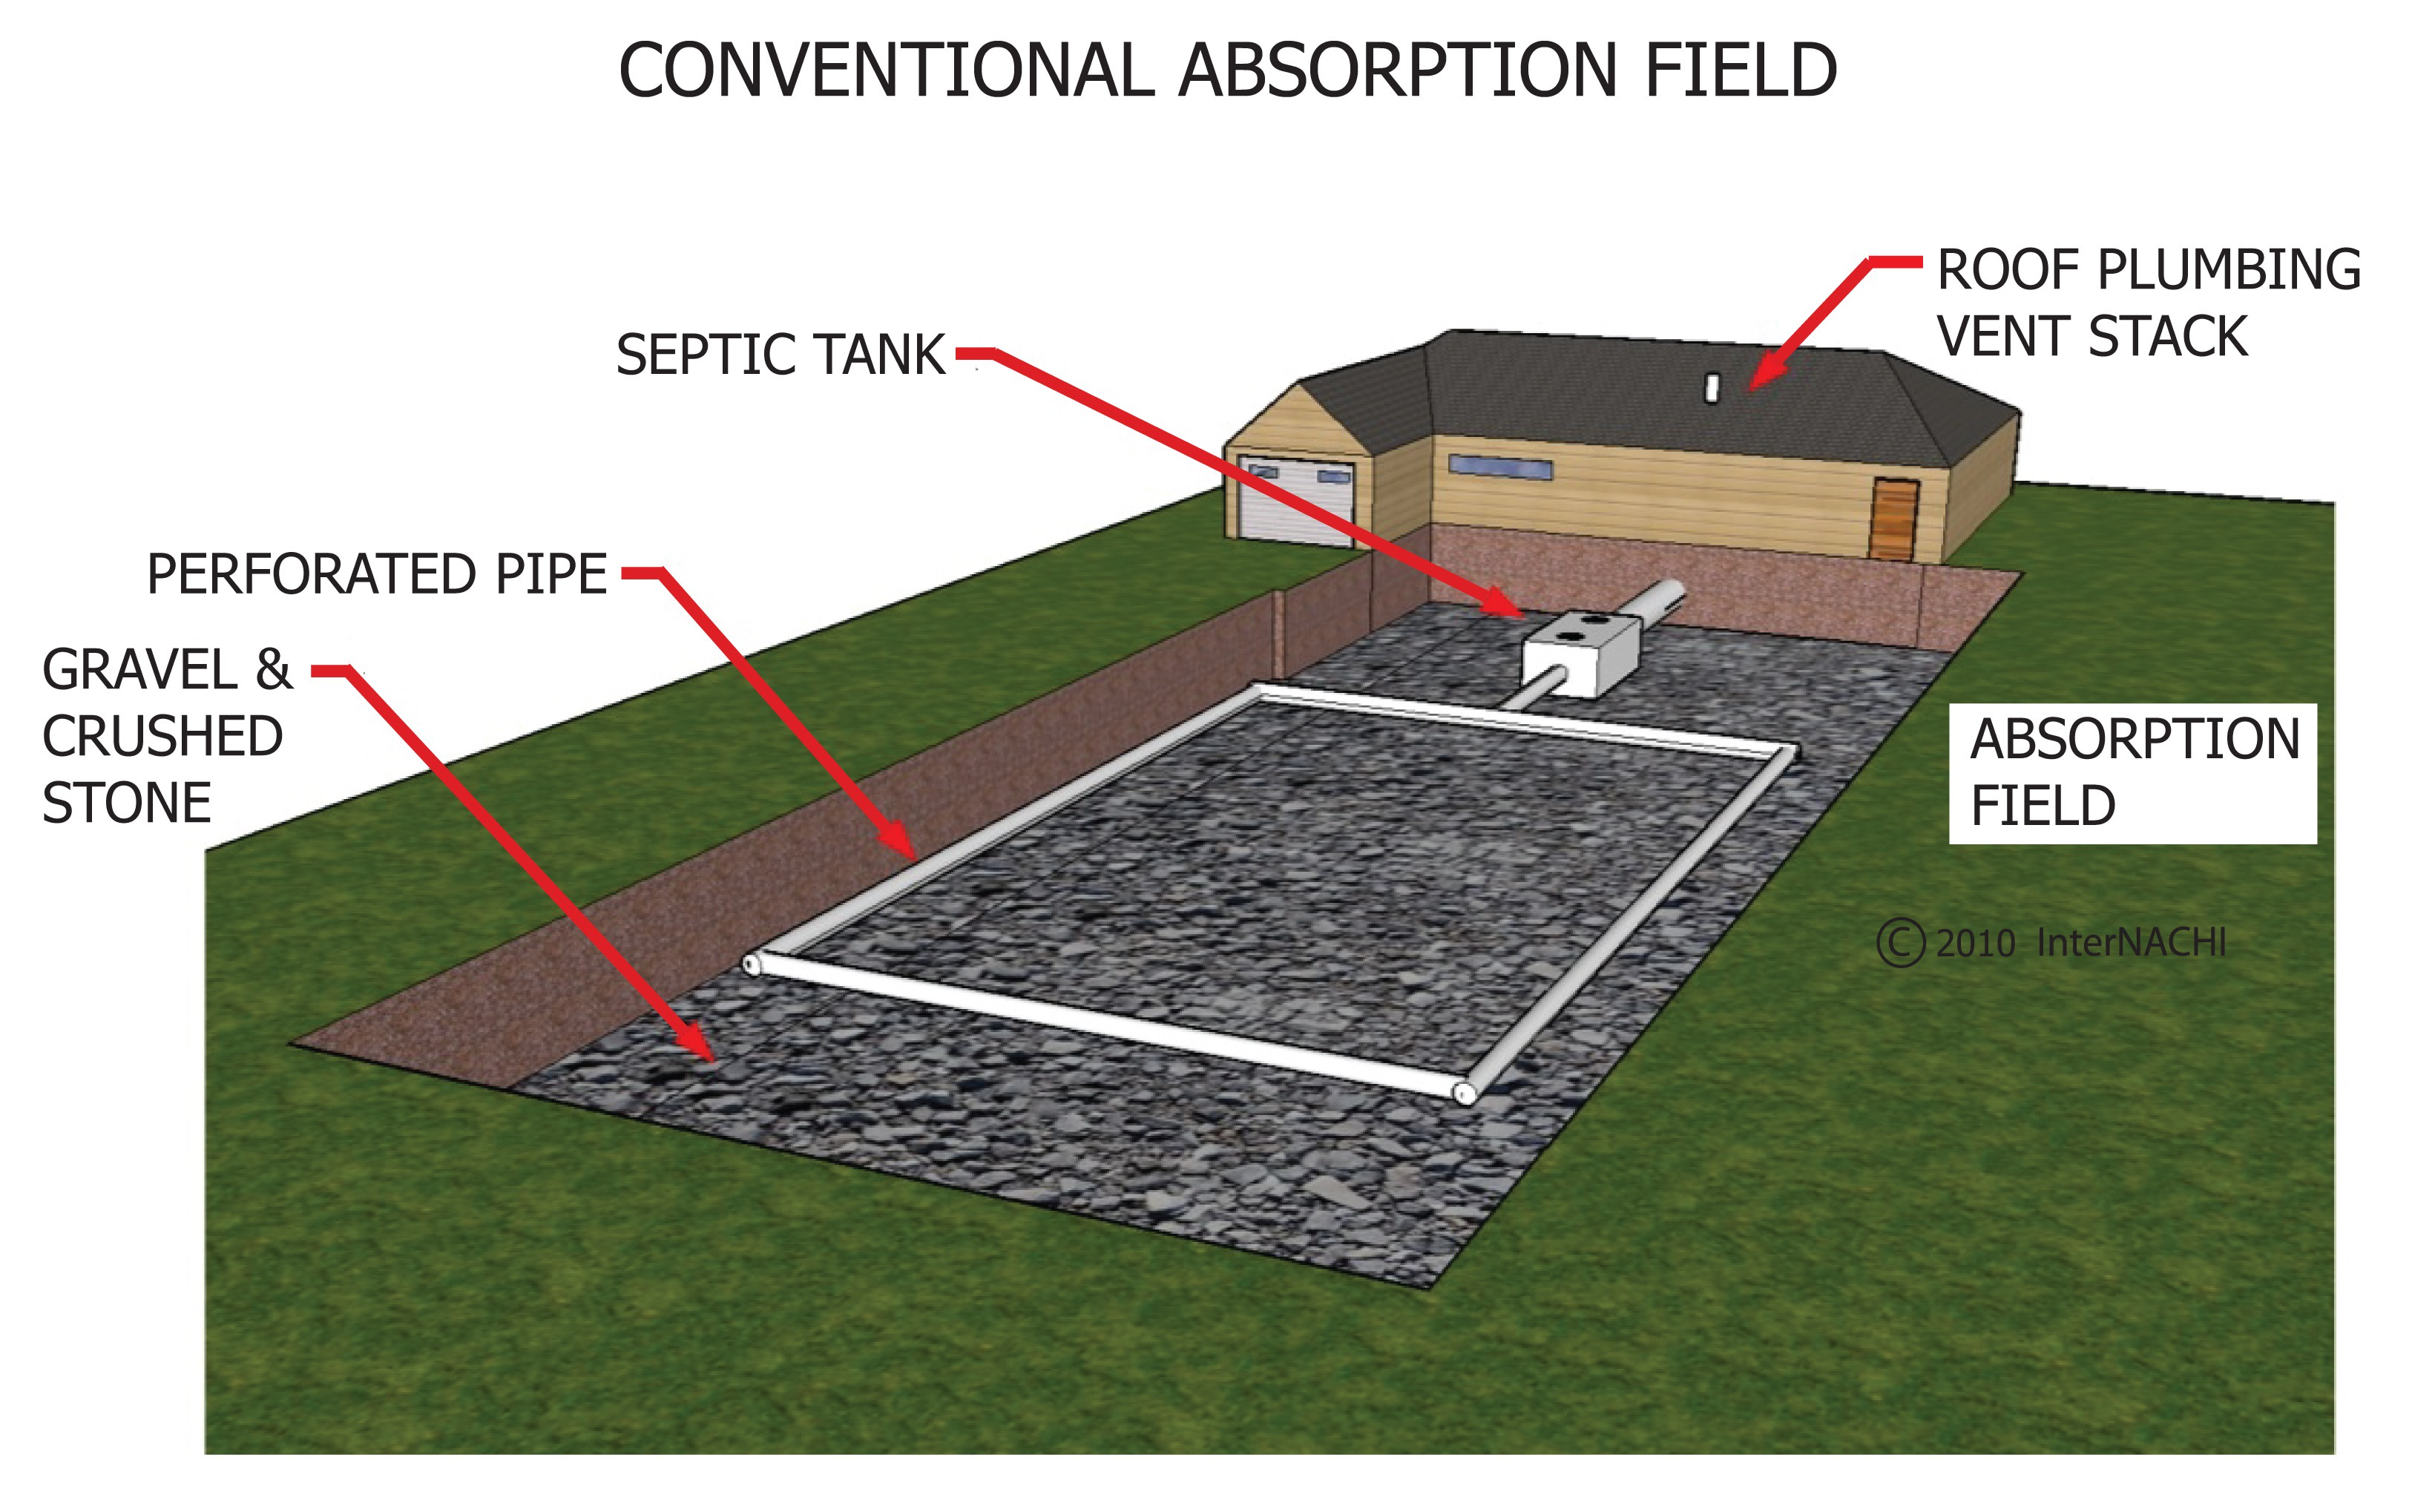 Conventional absorption field.